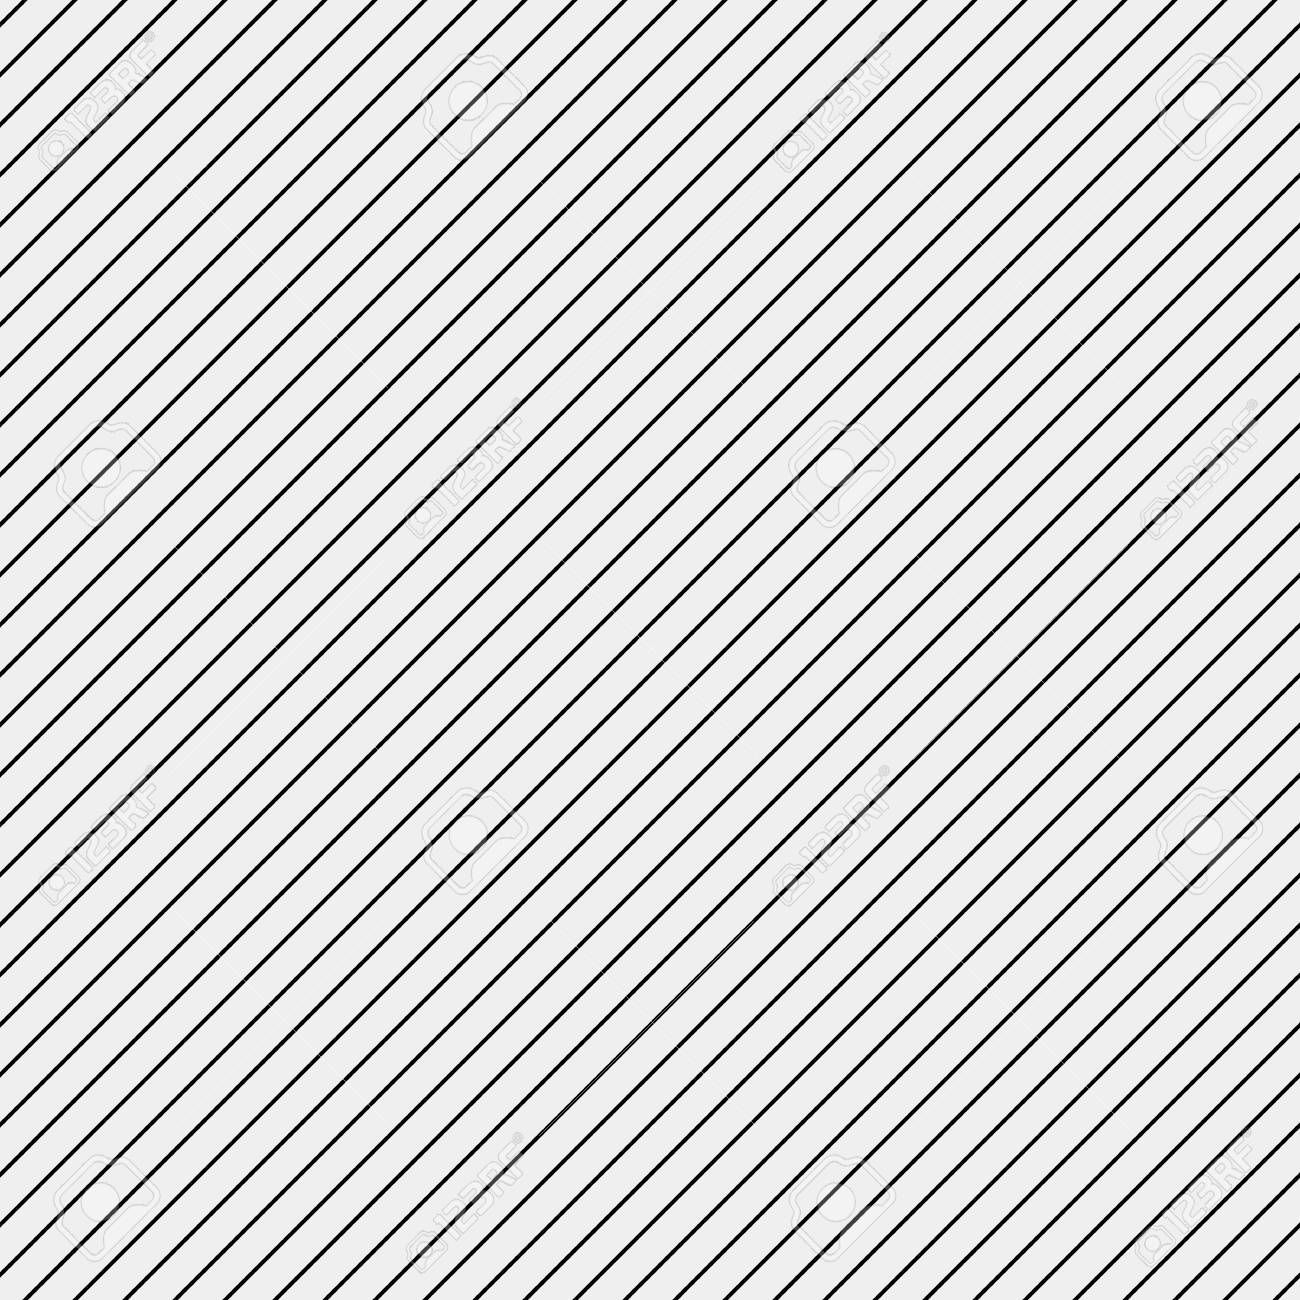 Vector Seamless Pattern Modern Stylish Texture Repeating Geometric Tiles With Diagonal Lines In Monochro In 2021 Geometric Tiles Seamless Patterns Merchandise Design